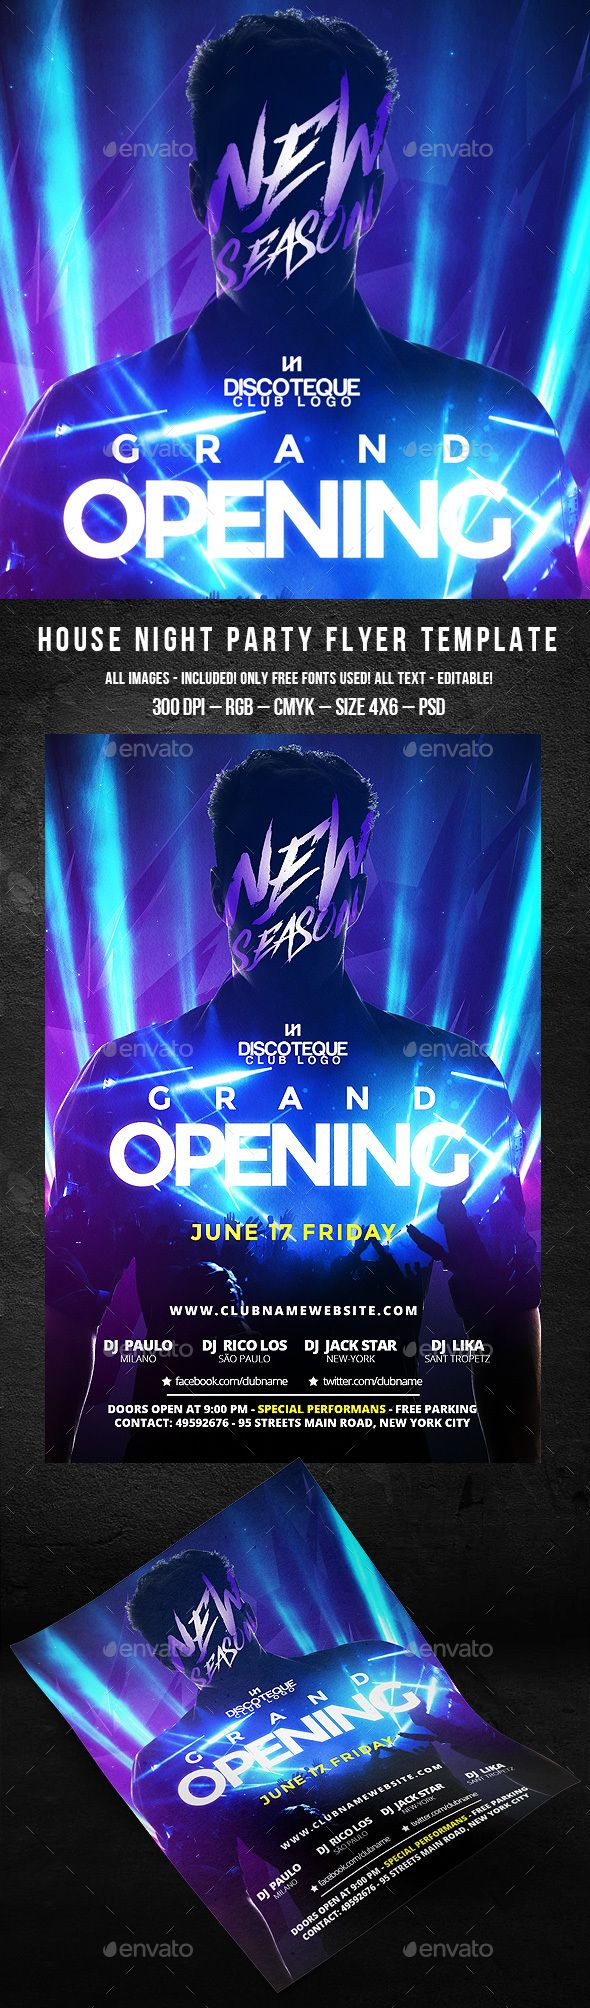 Grand Opening Flyer  Grand Opening Flyer Size And Fonts